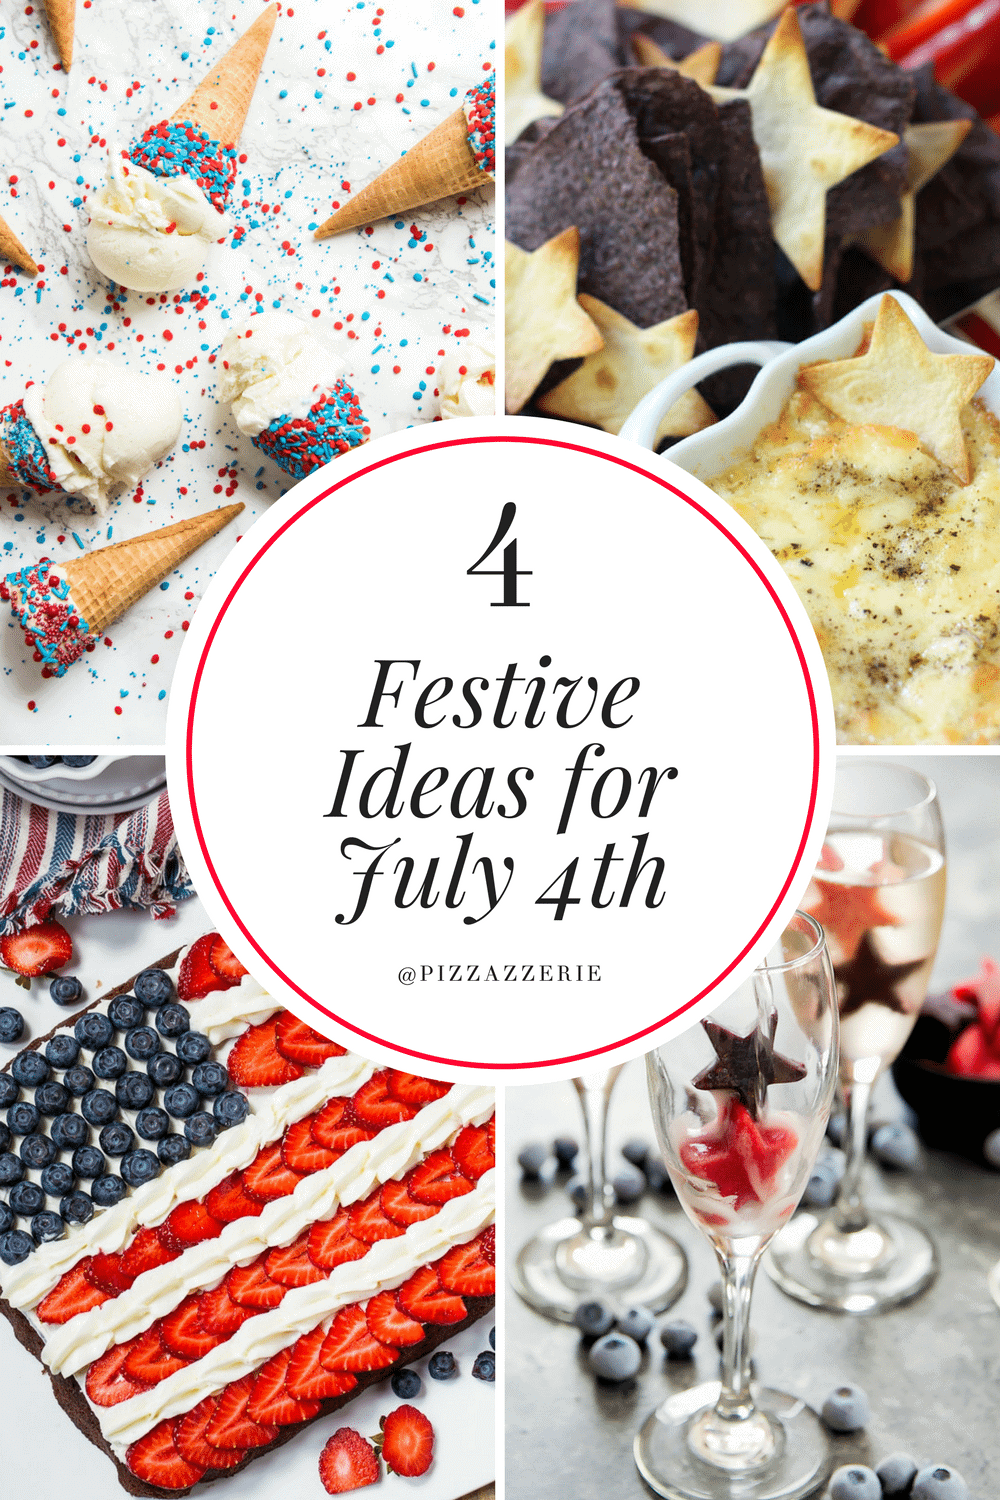 Festive Ideas for the 4th of July